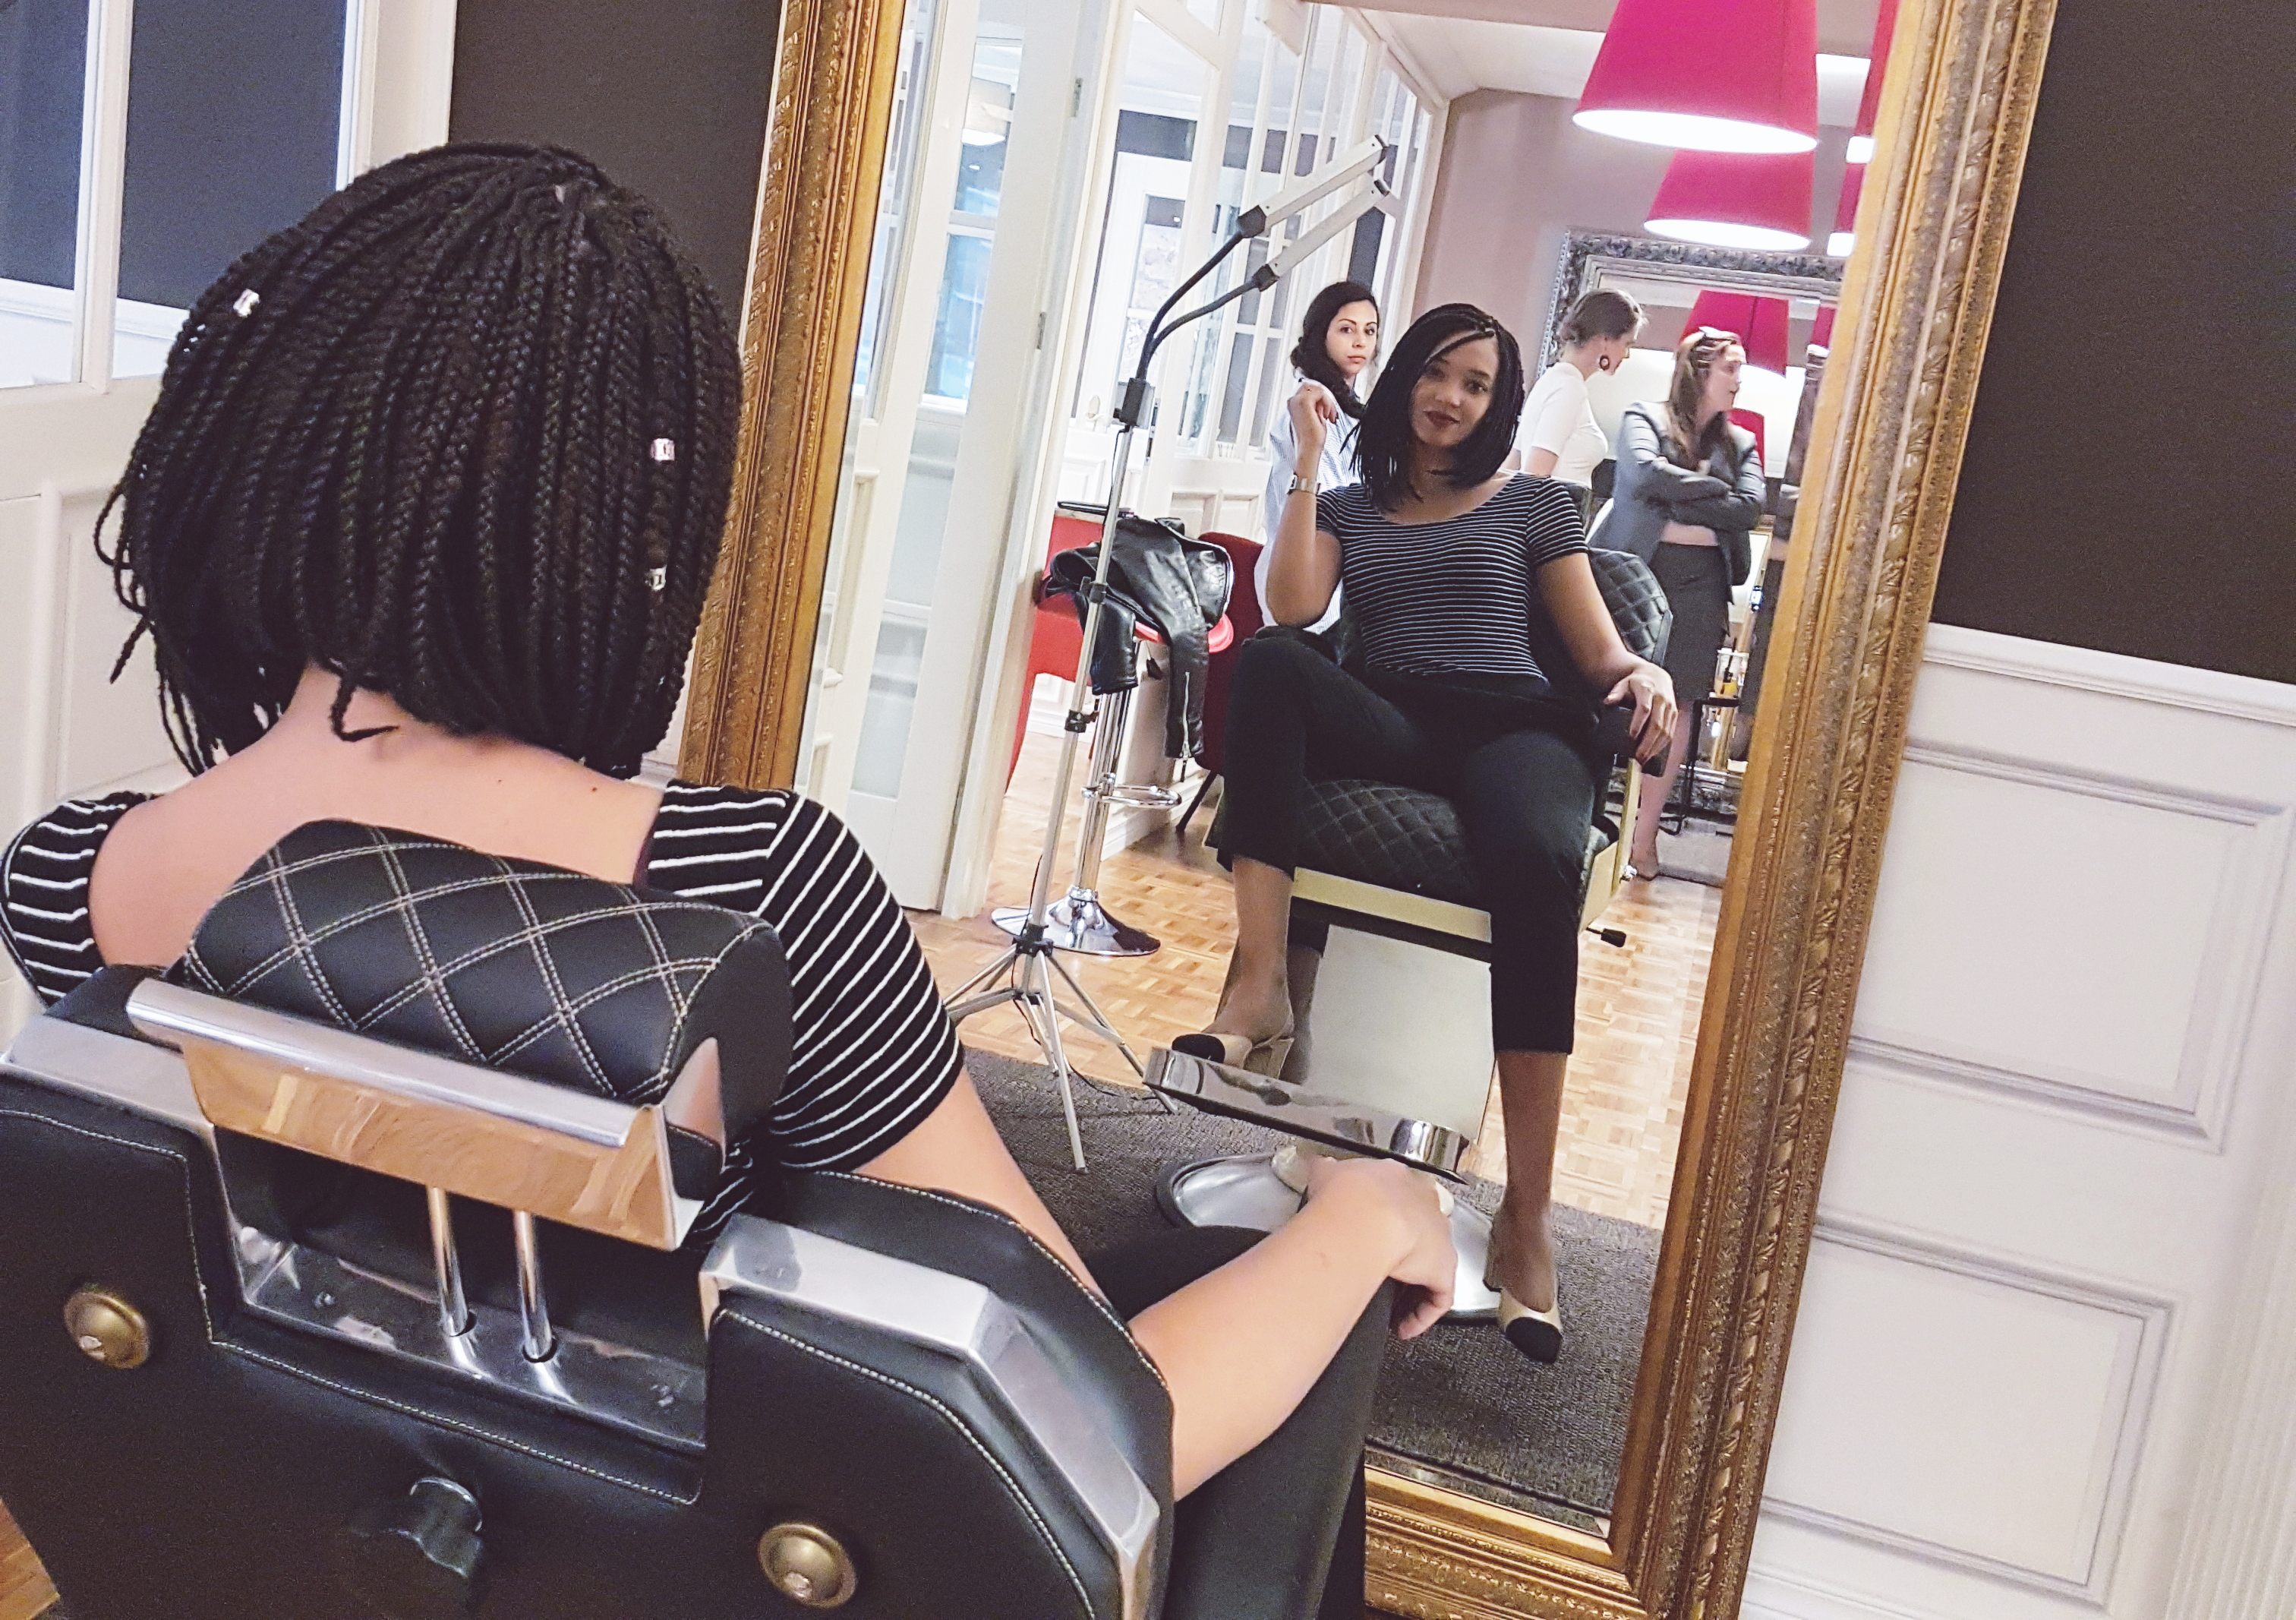 mercredie-blog-beaute-box-braids-carre-bob-inverted-plongeant-tresses-kanekalon-atelier-du-regard-soiree-inauguration